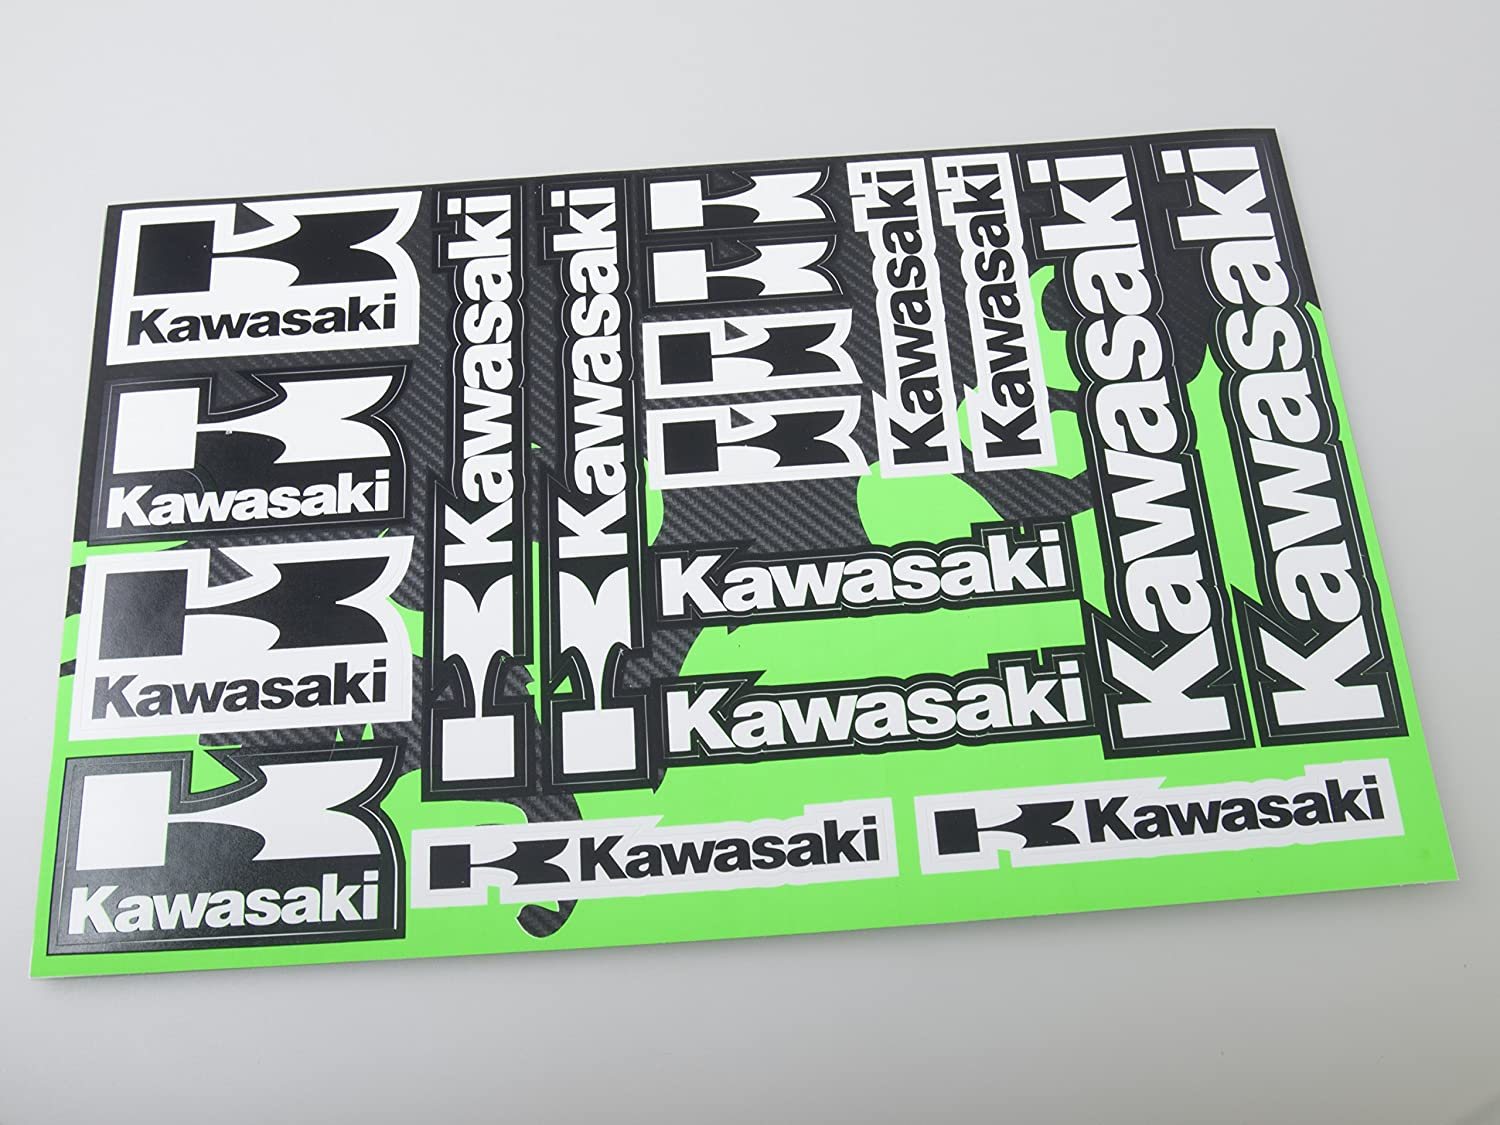 Kawasaki Stickers Decals 30x20cm vinyl with extra protection on top CC019